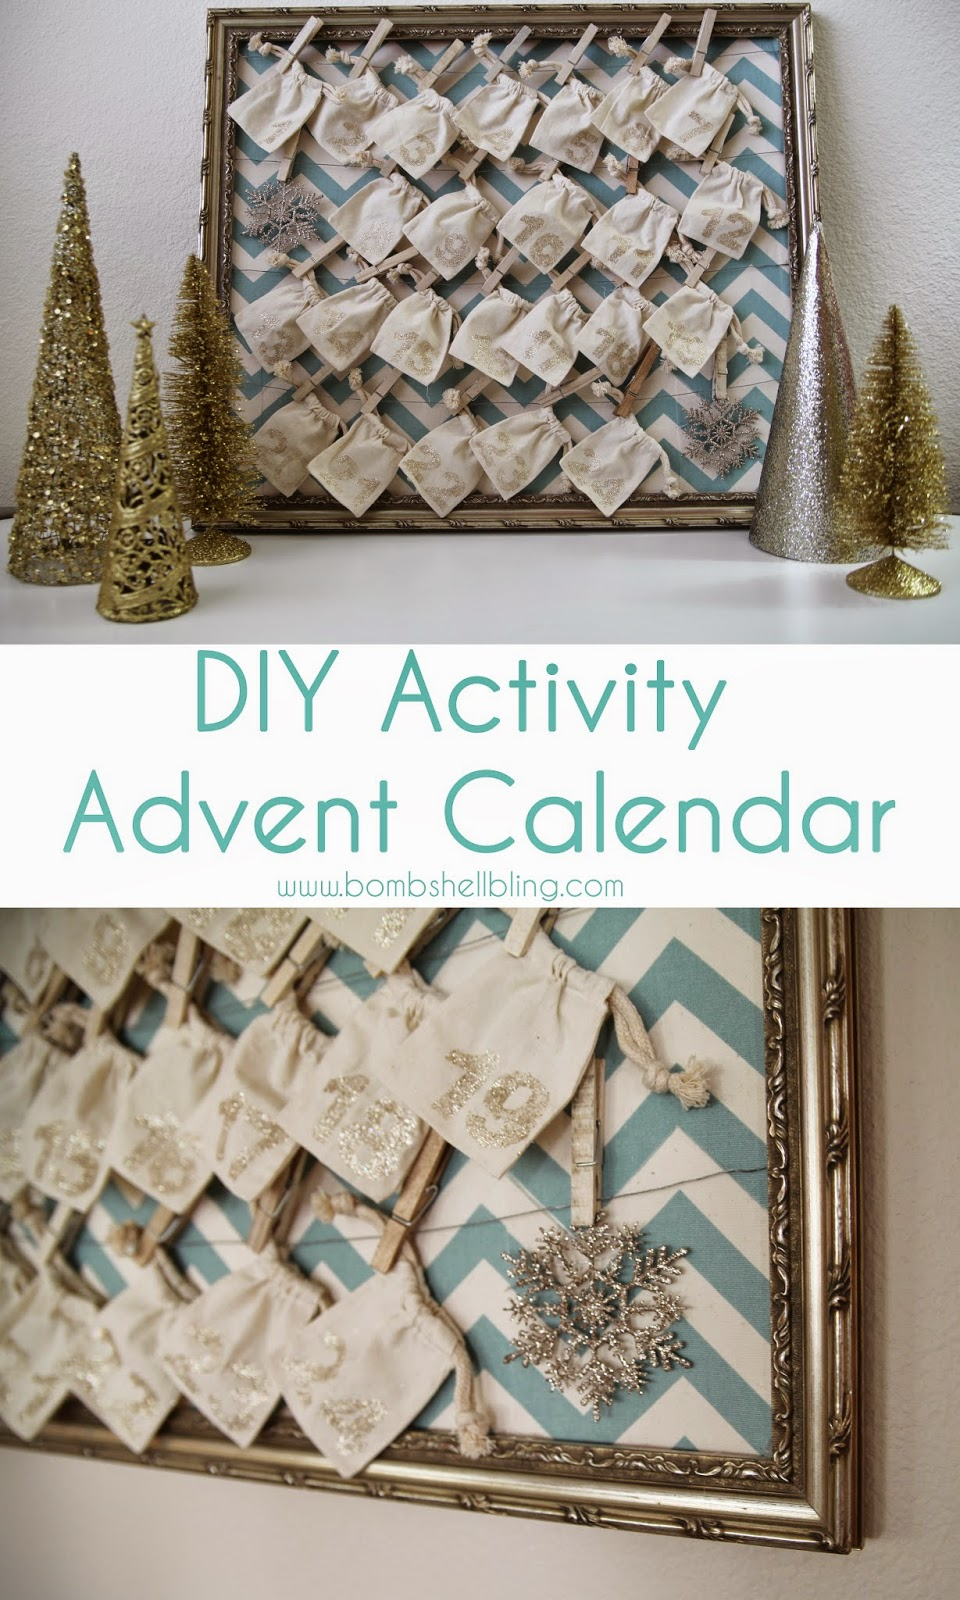 November Calendar Diy : Diy activity advent calendar